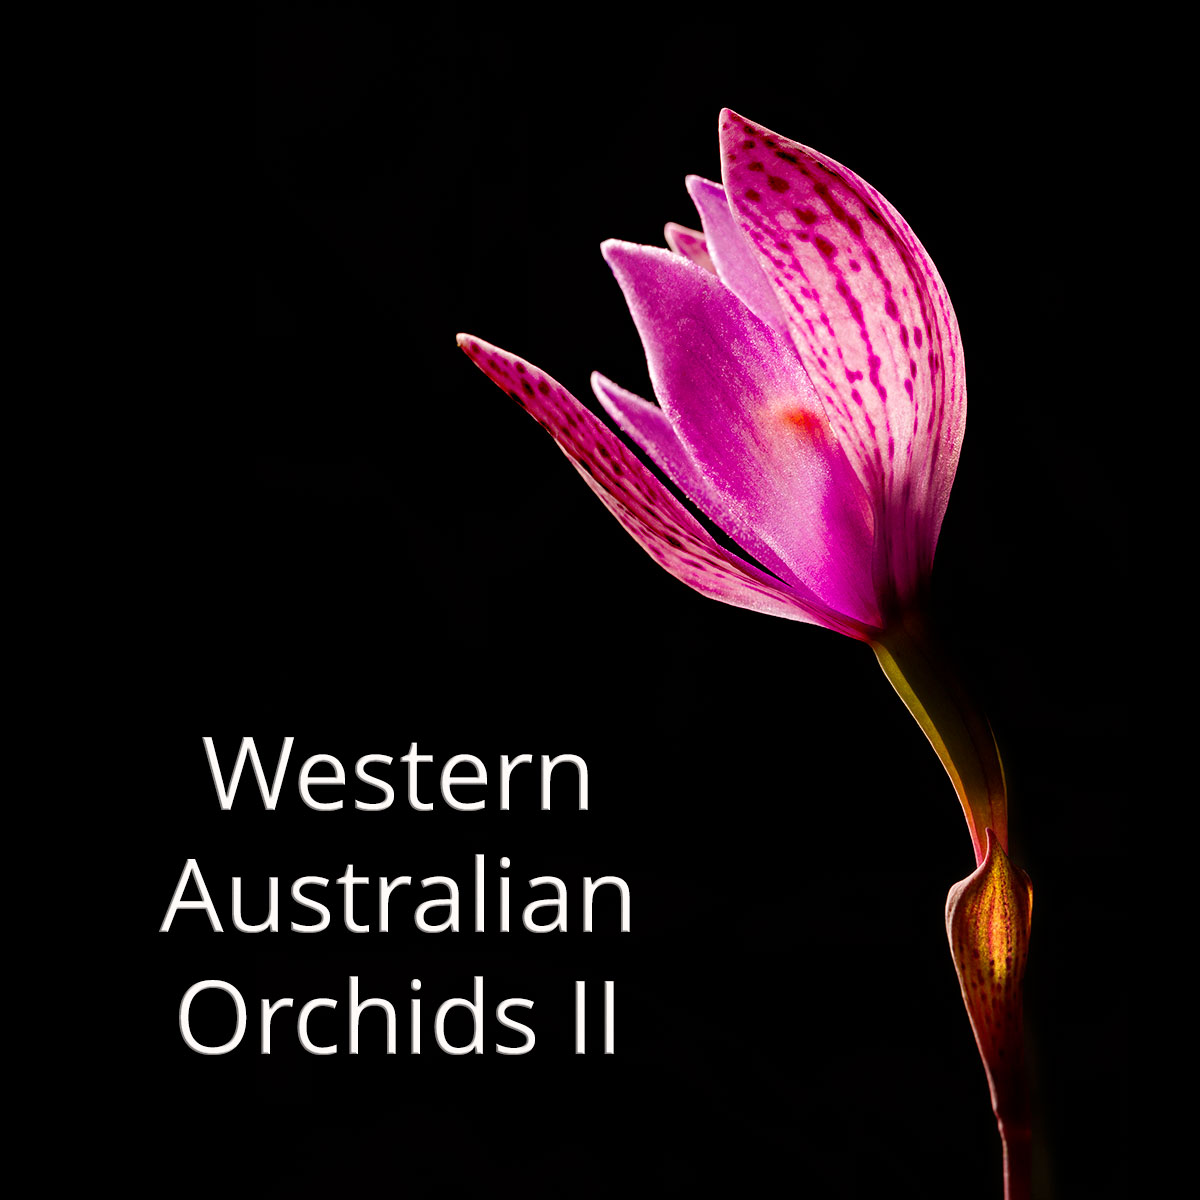 WA orchids gallery II (image: eastern curly locks, Thelymitra maculata)